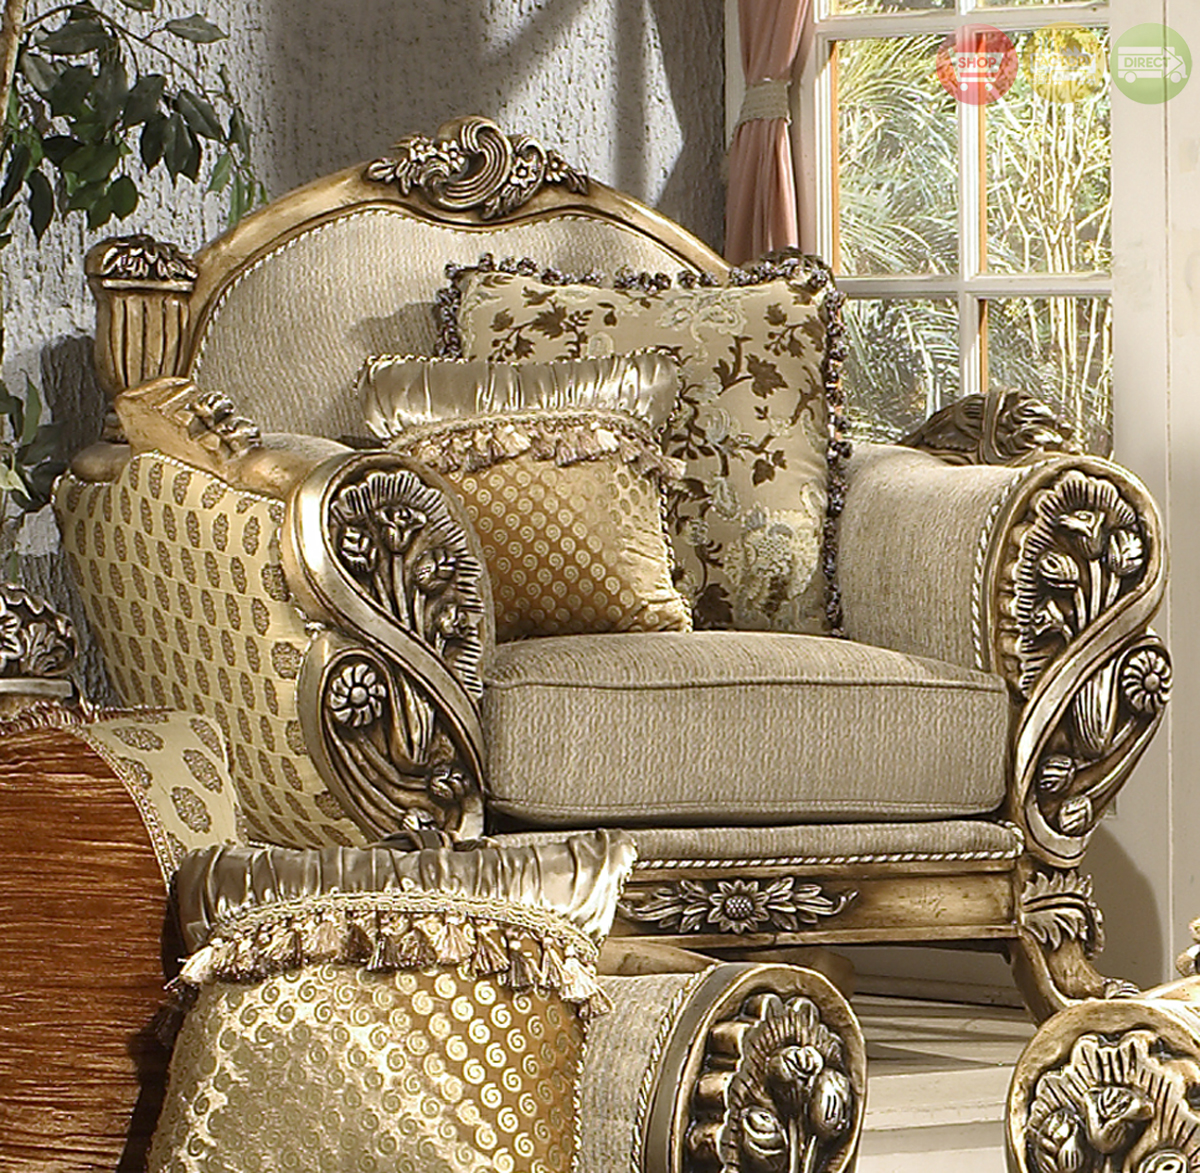 Luxury Traditional Living Room Upholstery Set W/Carved